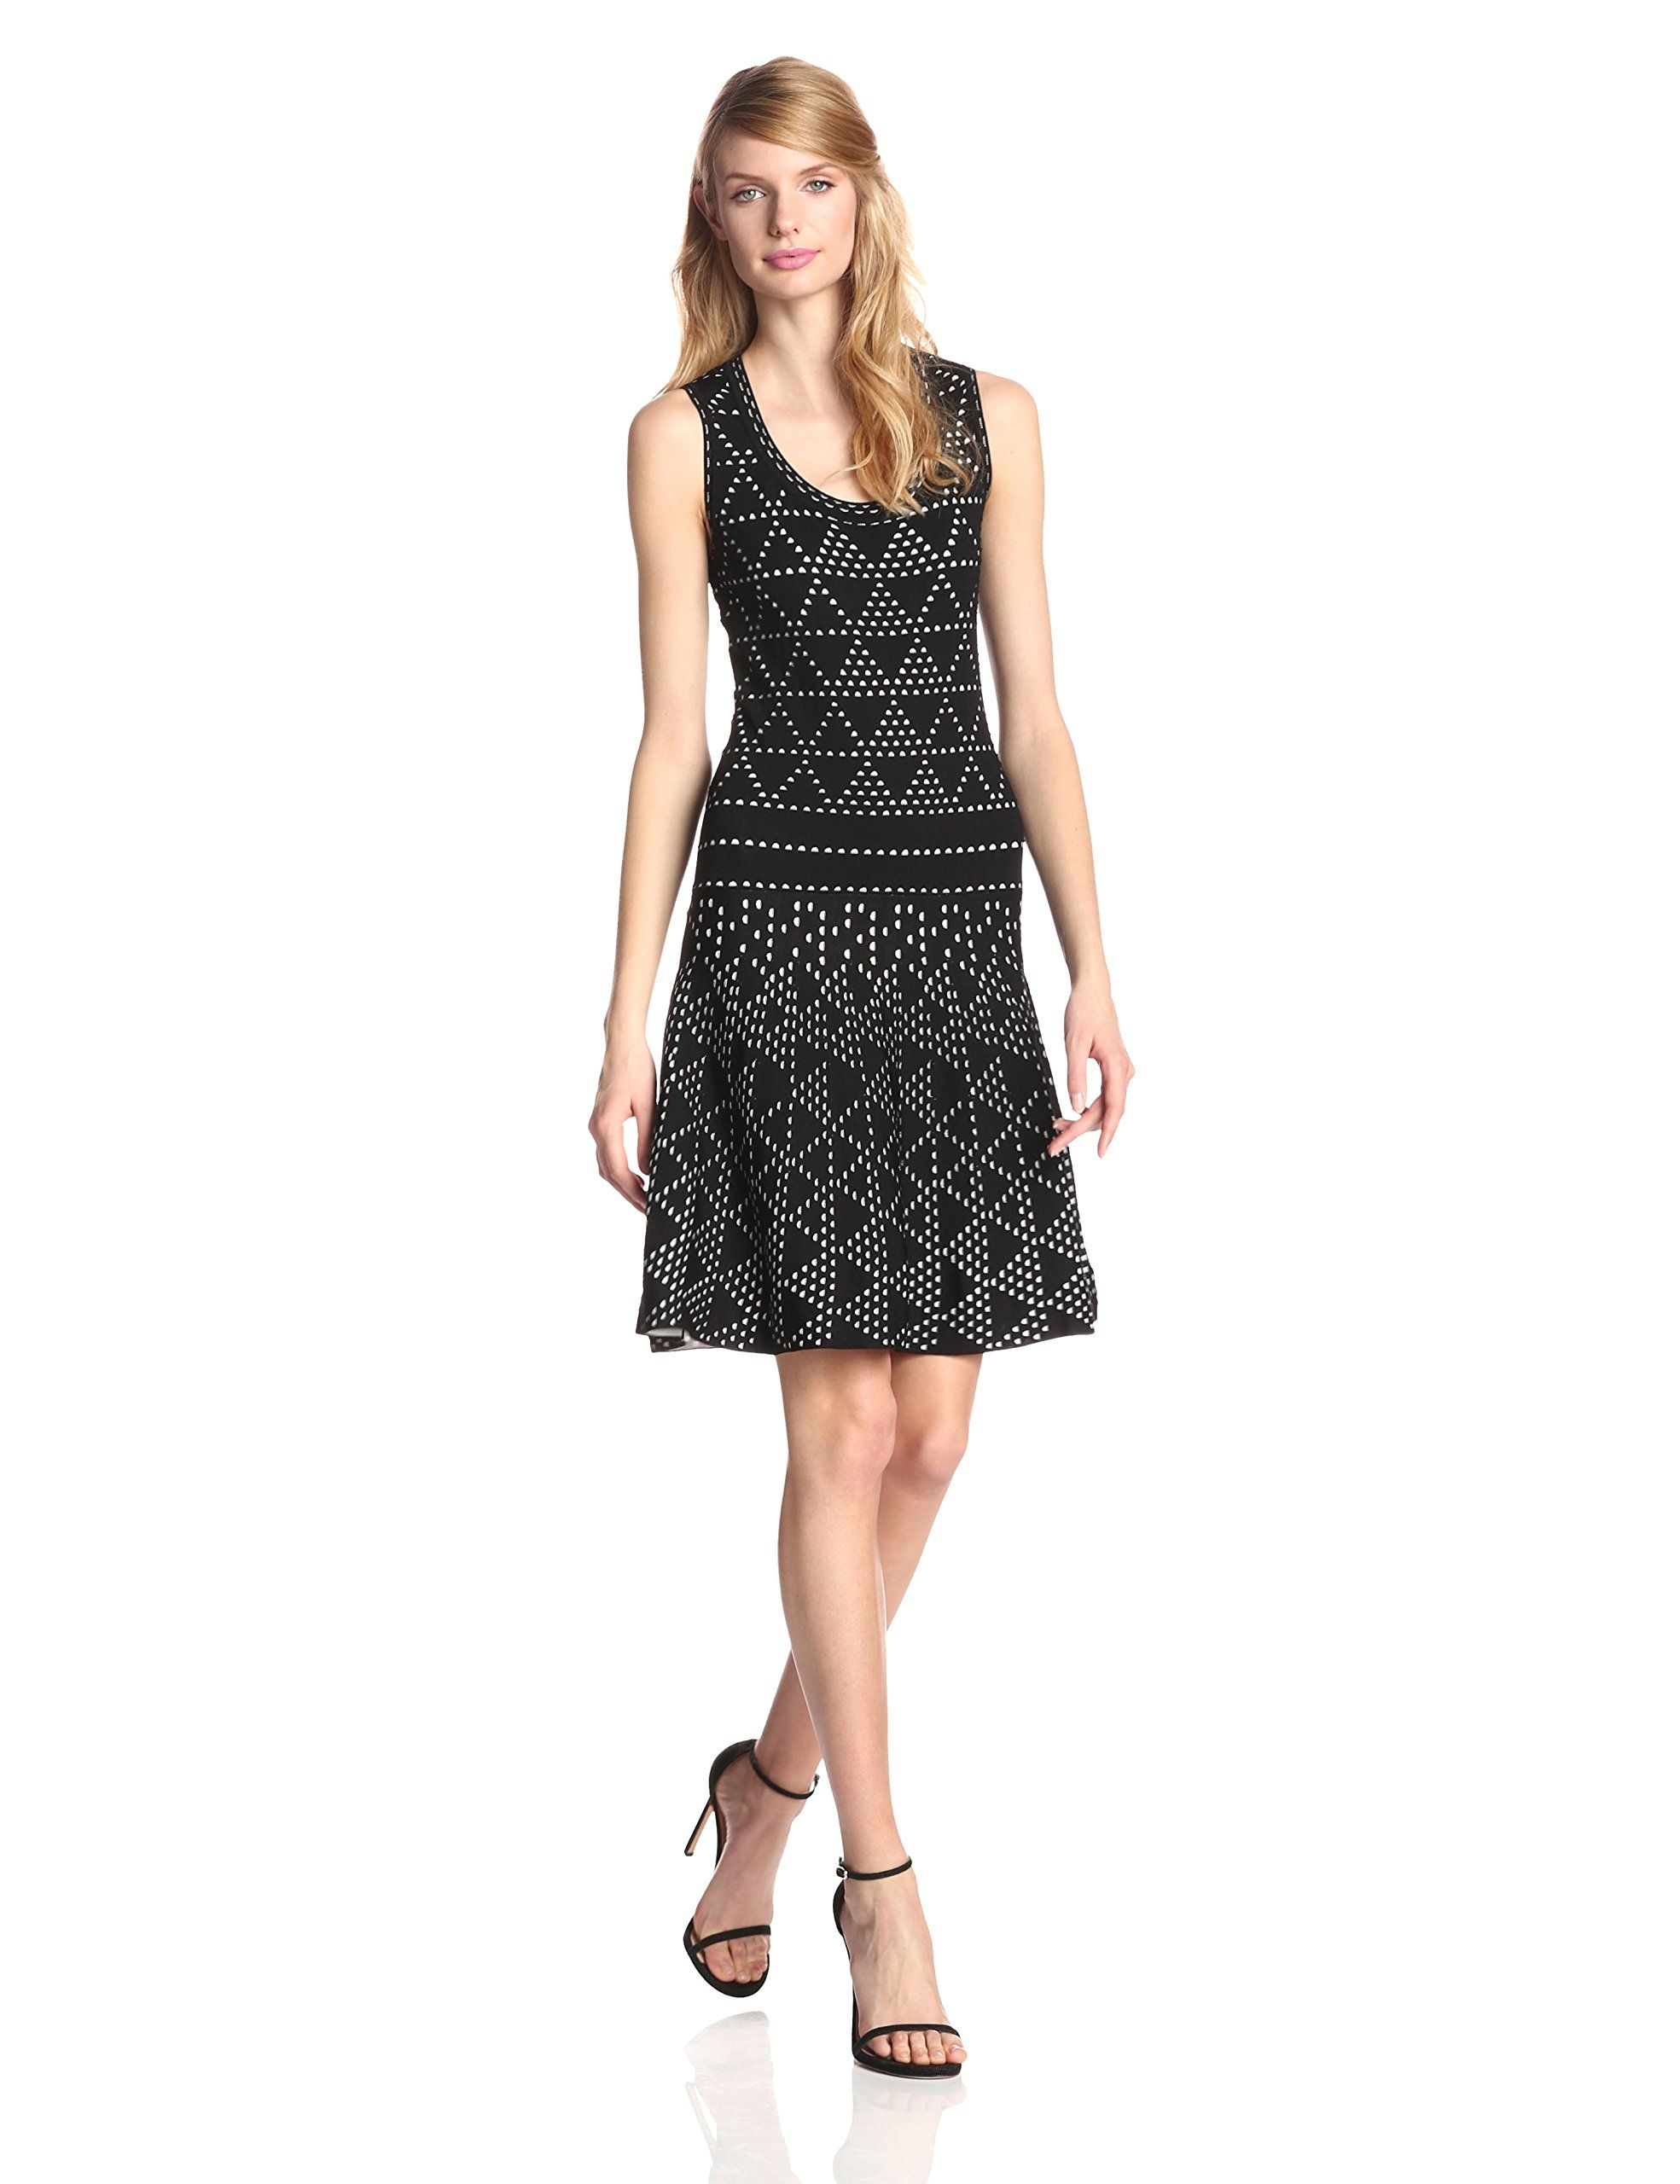 Nanette lepore womenus diamond dazzle knit fit and flare dress